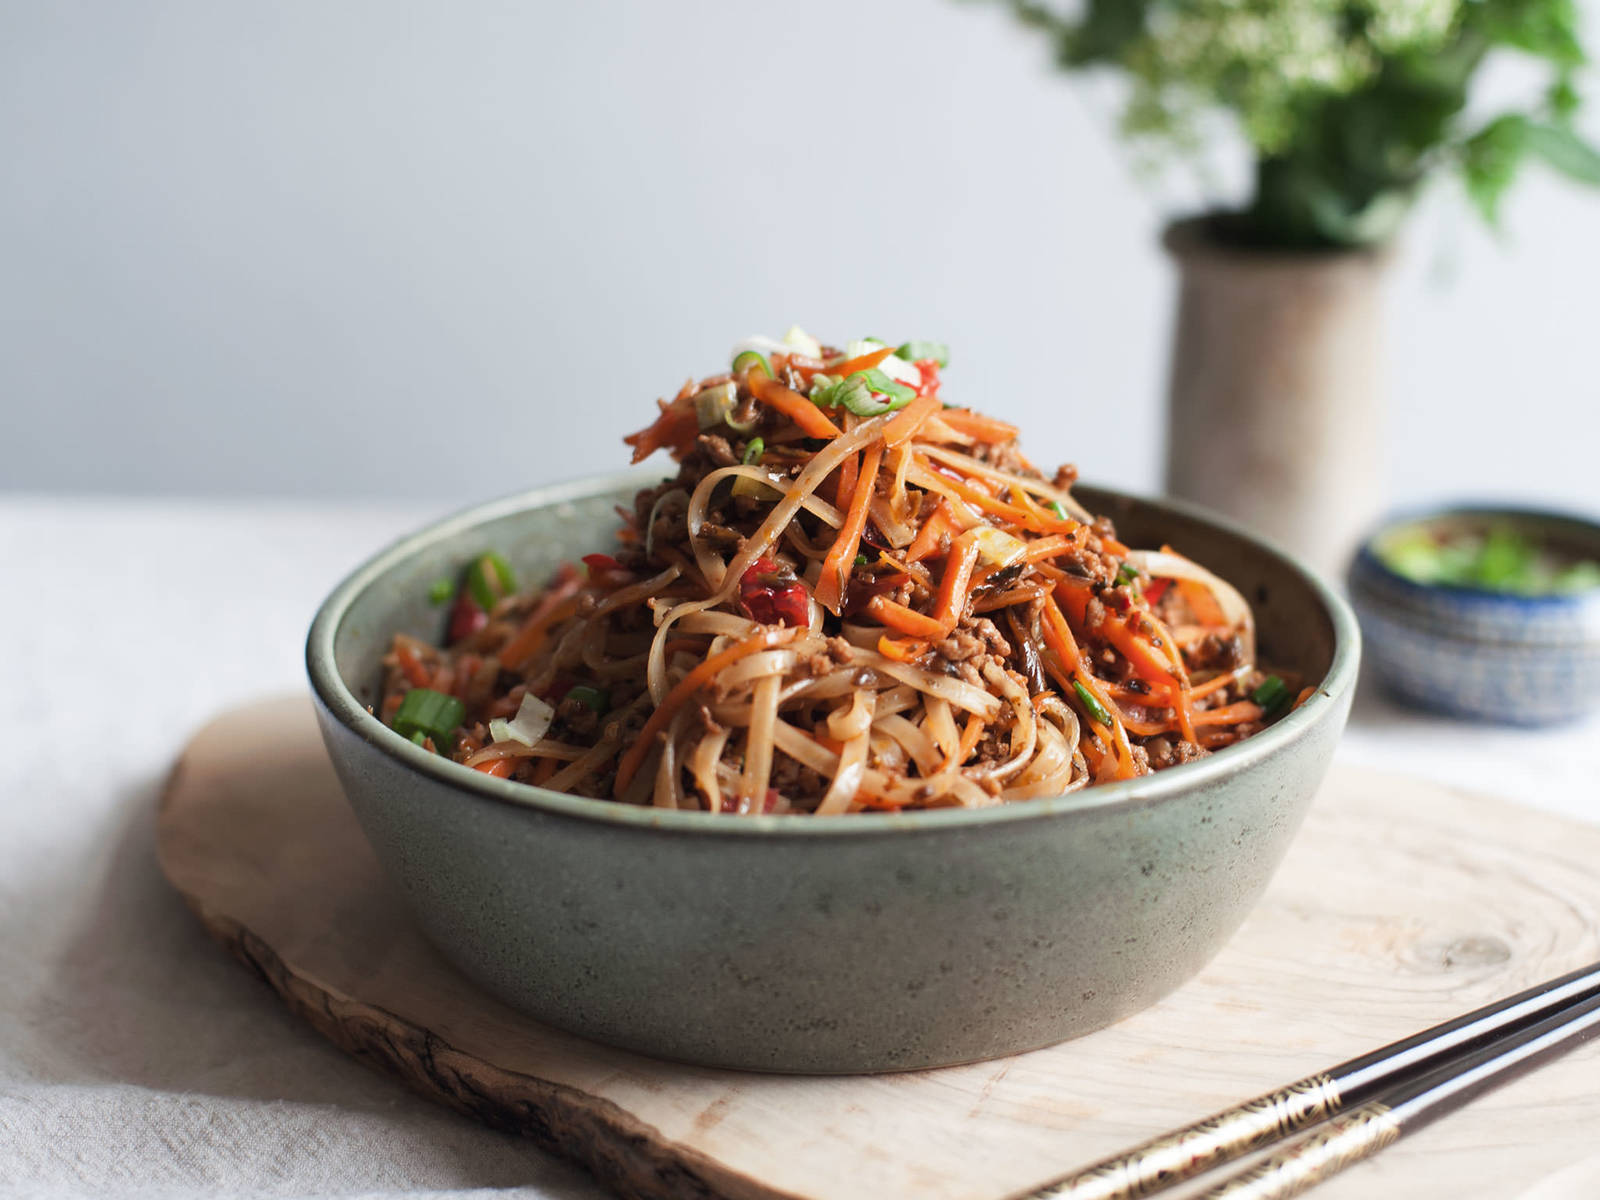 Sichuan rice noodle and pork stir-fry